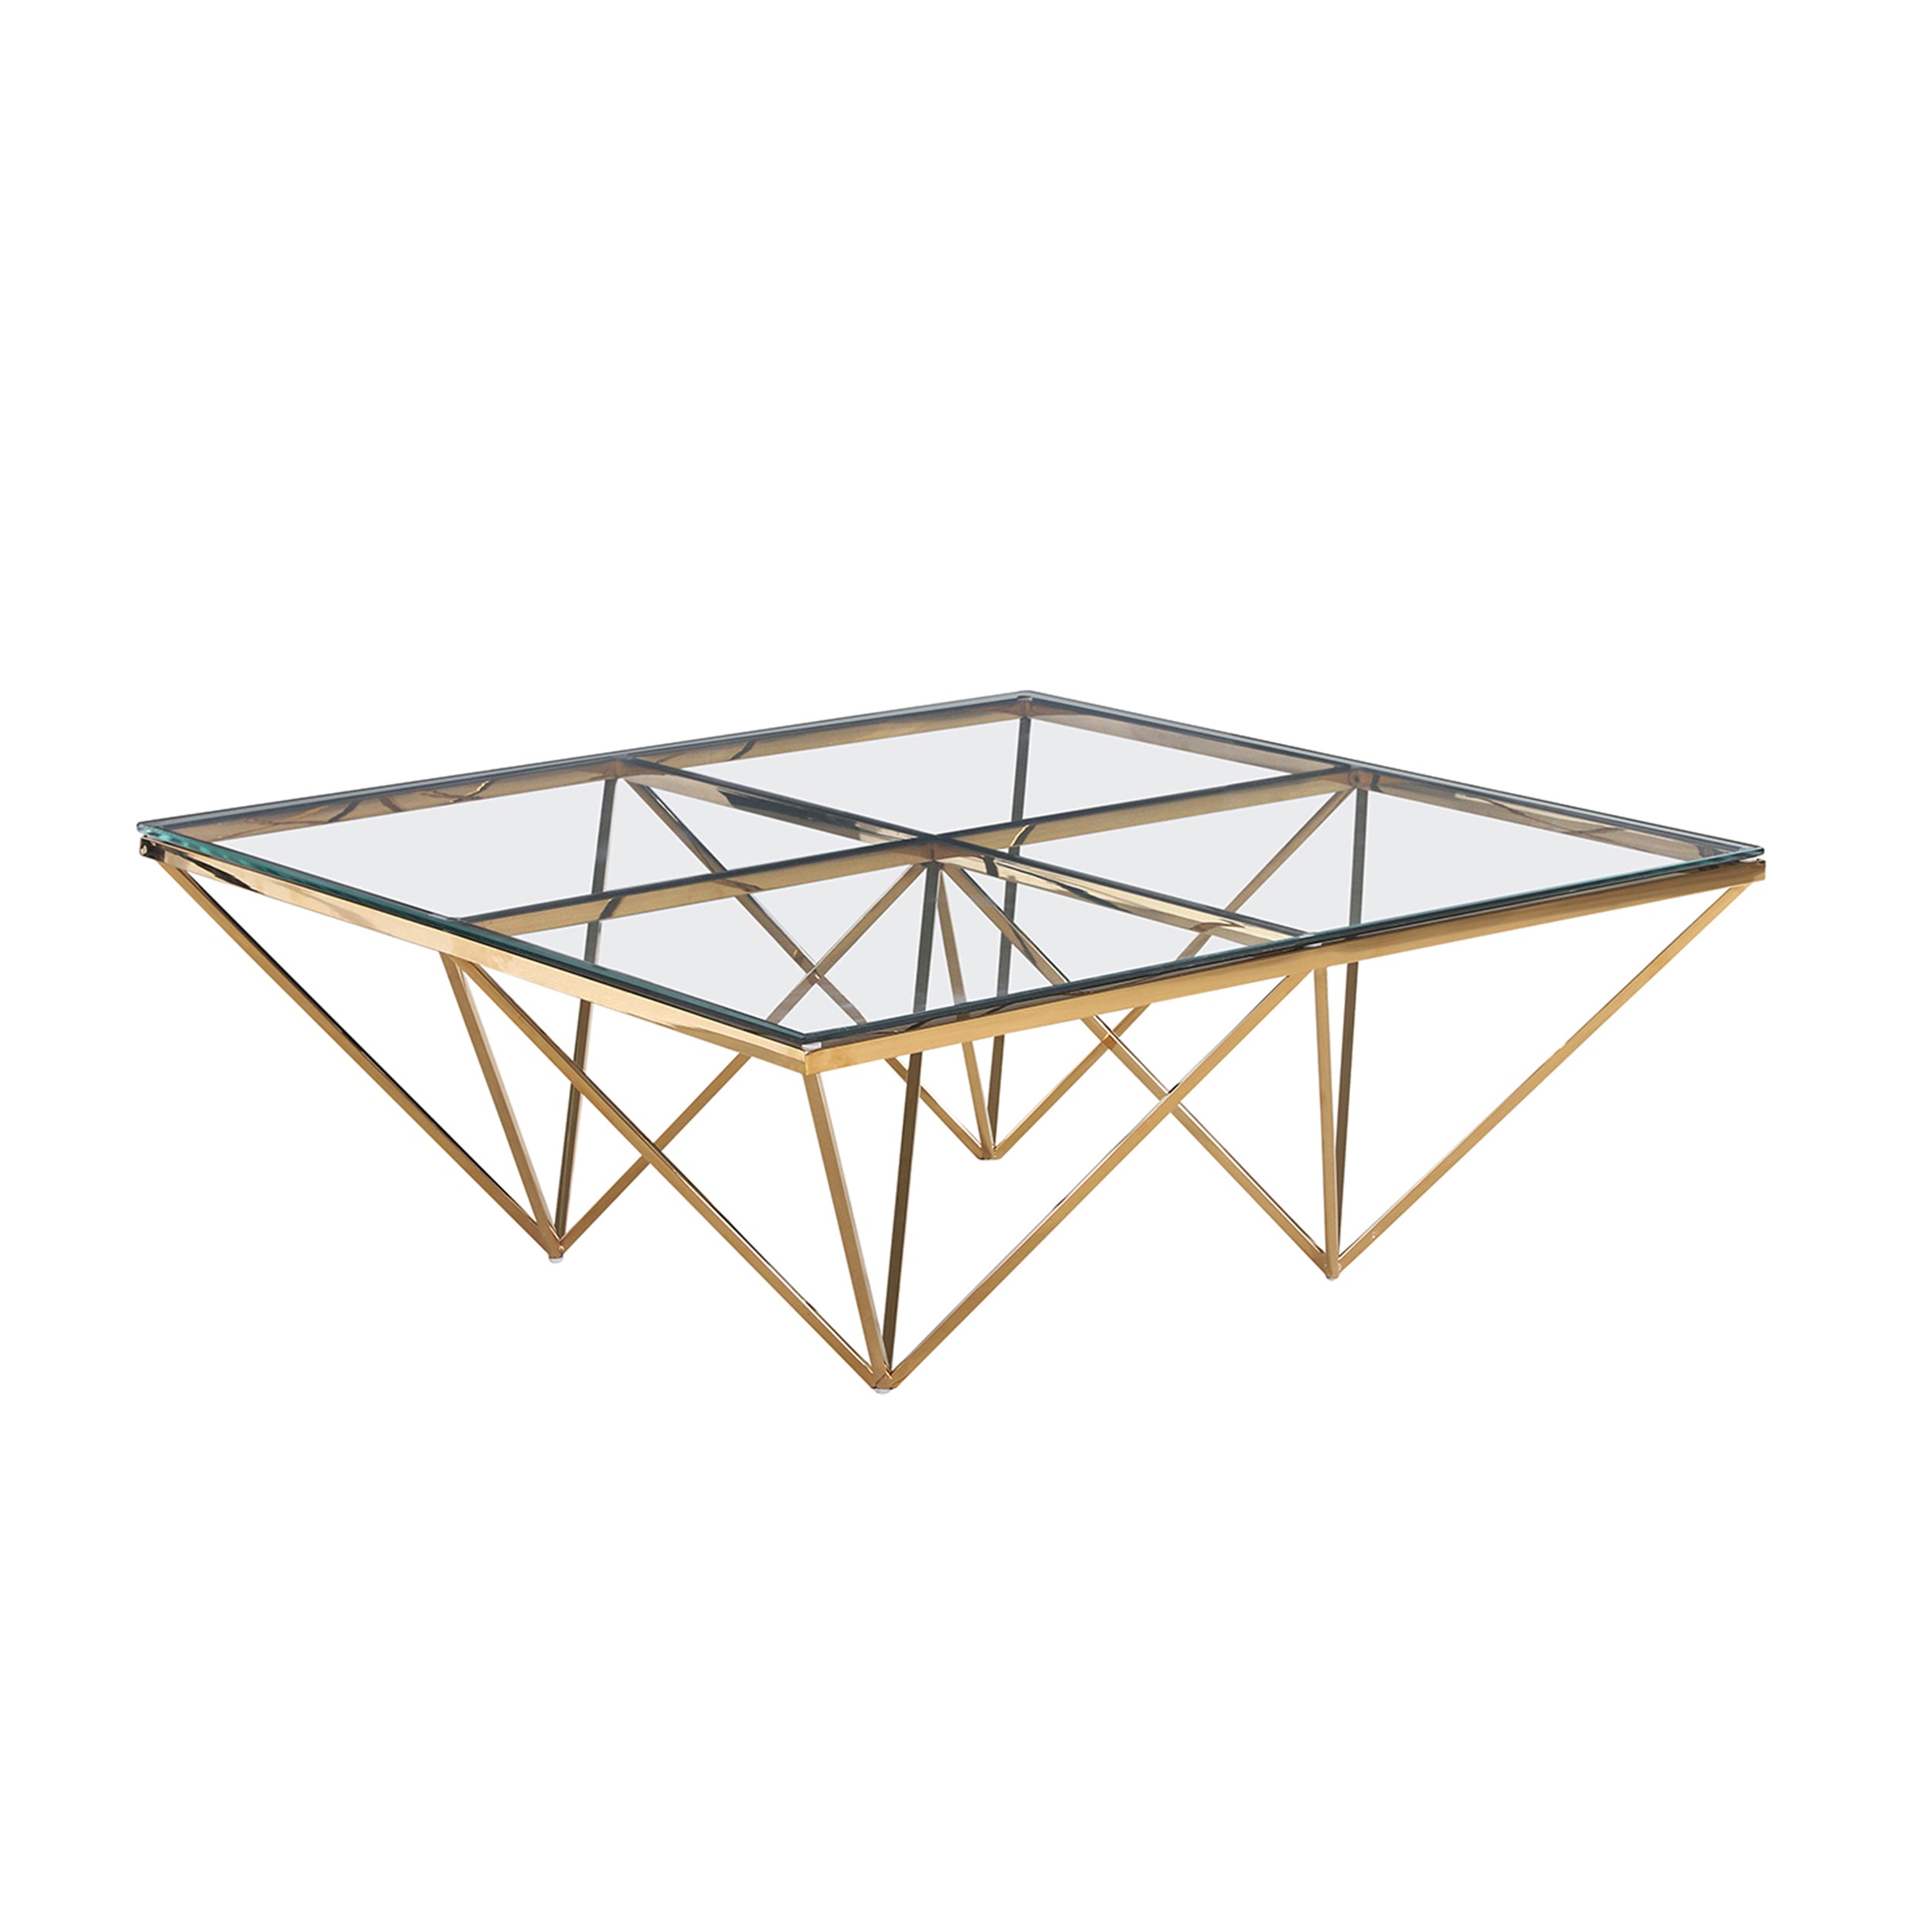 GOLD DIAMOND LEG COCKTAIL TABLE, GLASS